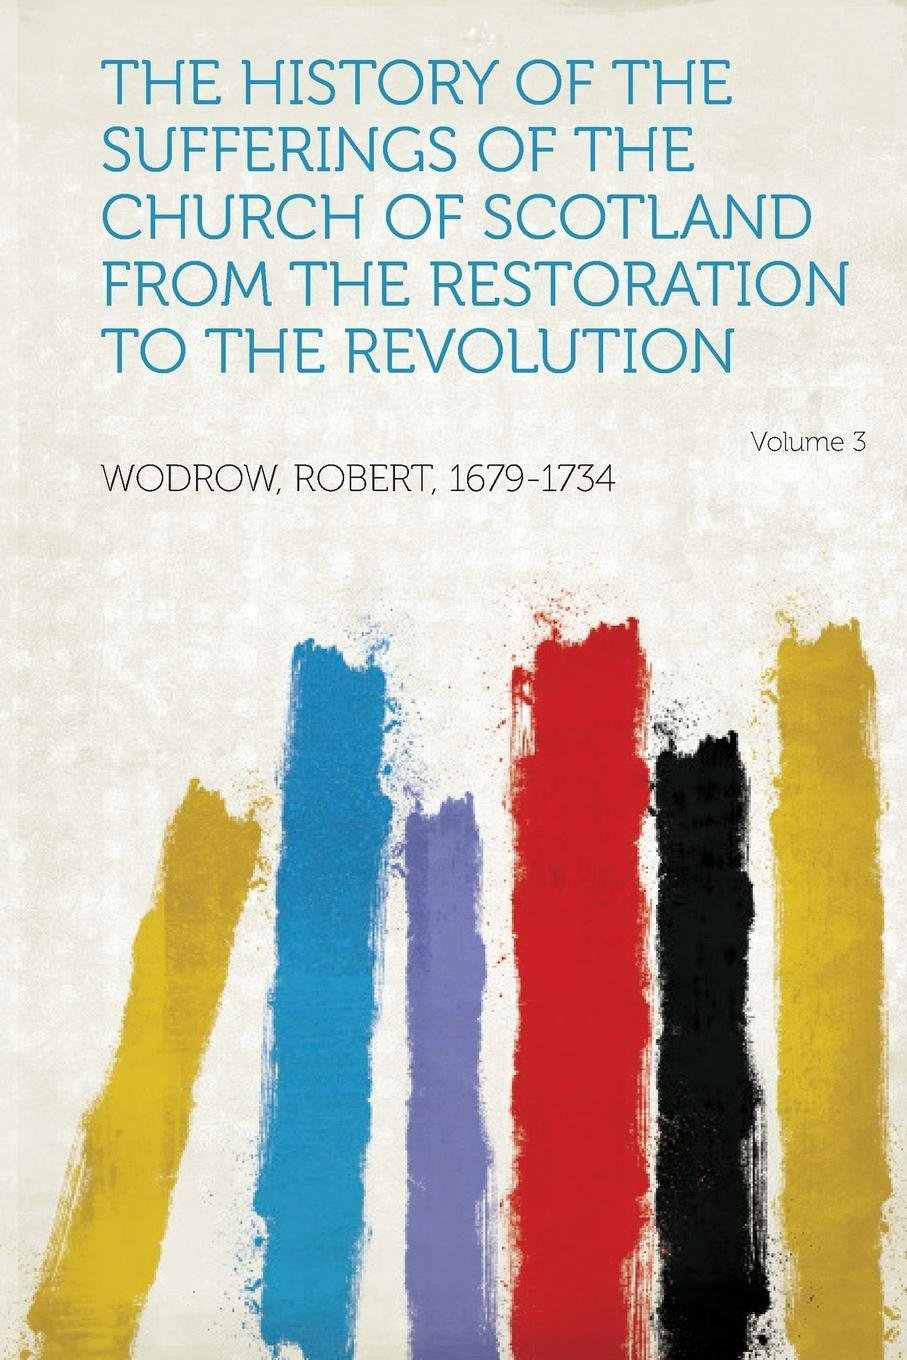 The History of the Sufferings of the Church of Scotland from the Restoration to the Revolution Volume 3 ebook